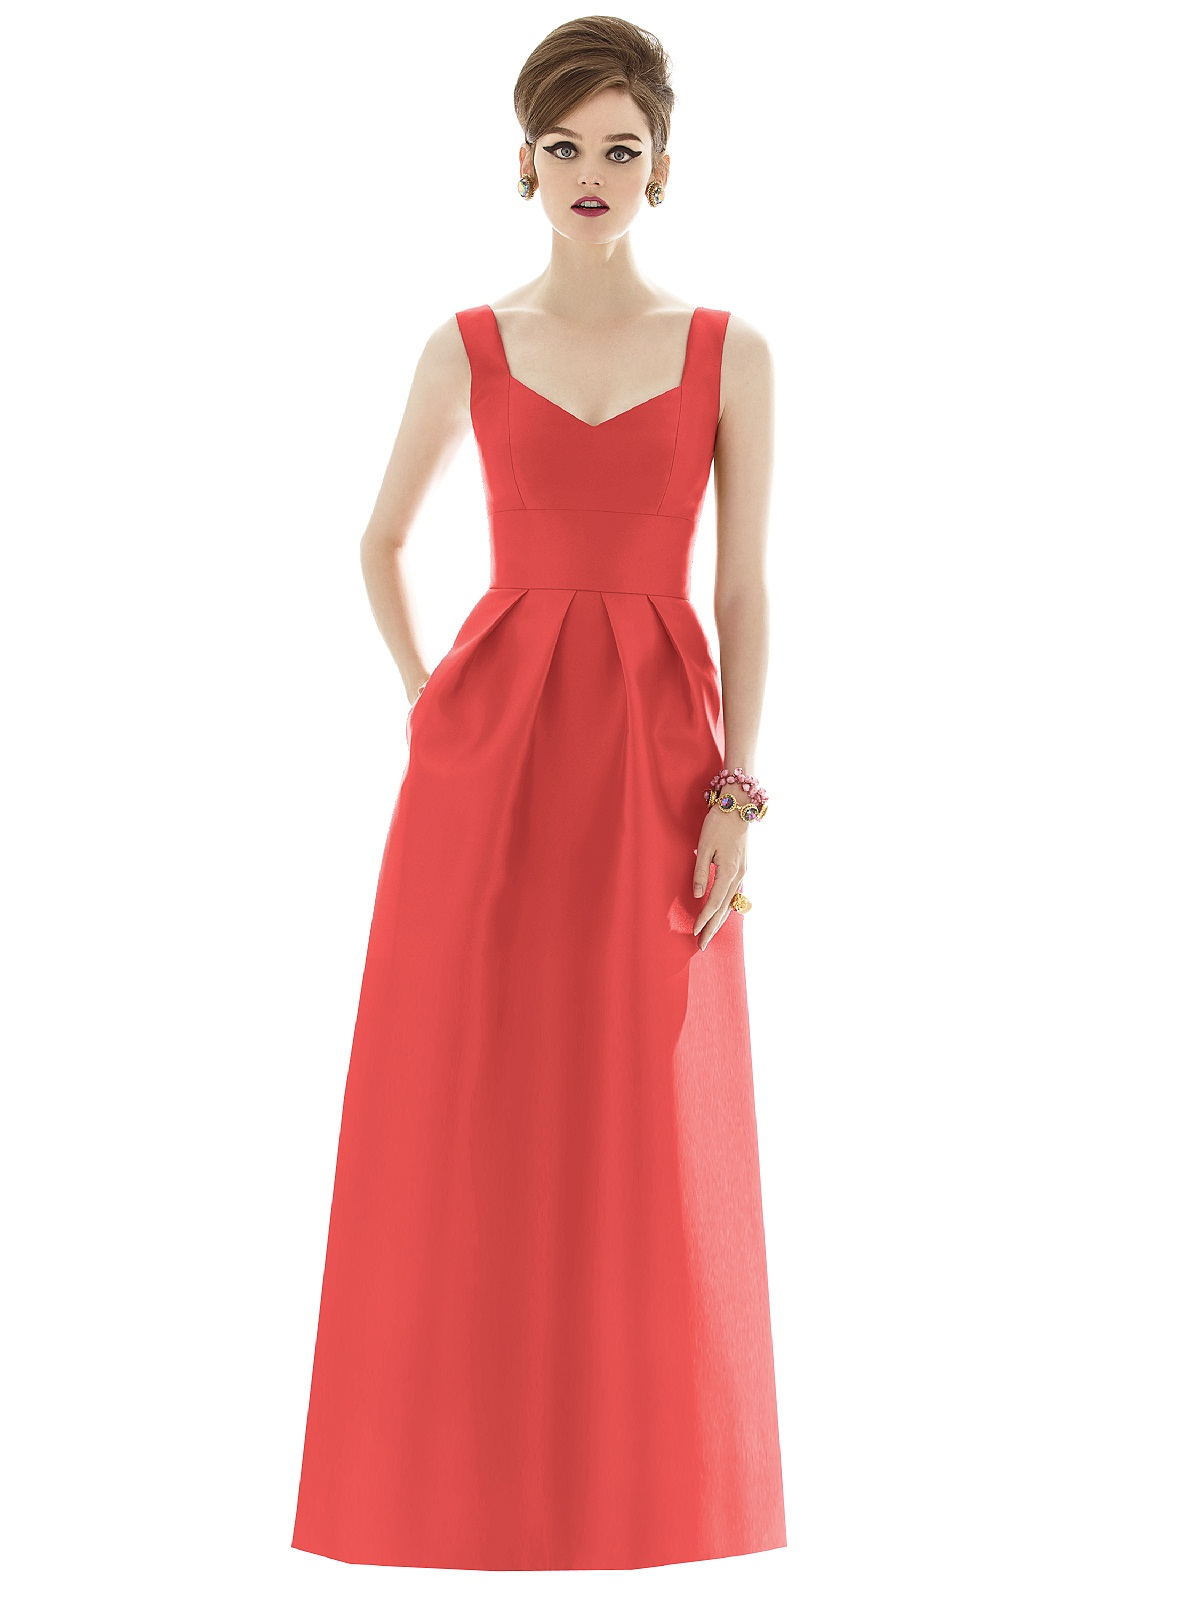 Alfred sung bridesmaid dresses designers alfred sung bridesmaid dresses alfred sung d659 ombrellifo Choice Image